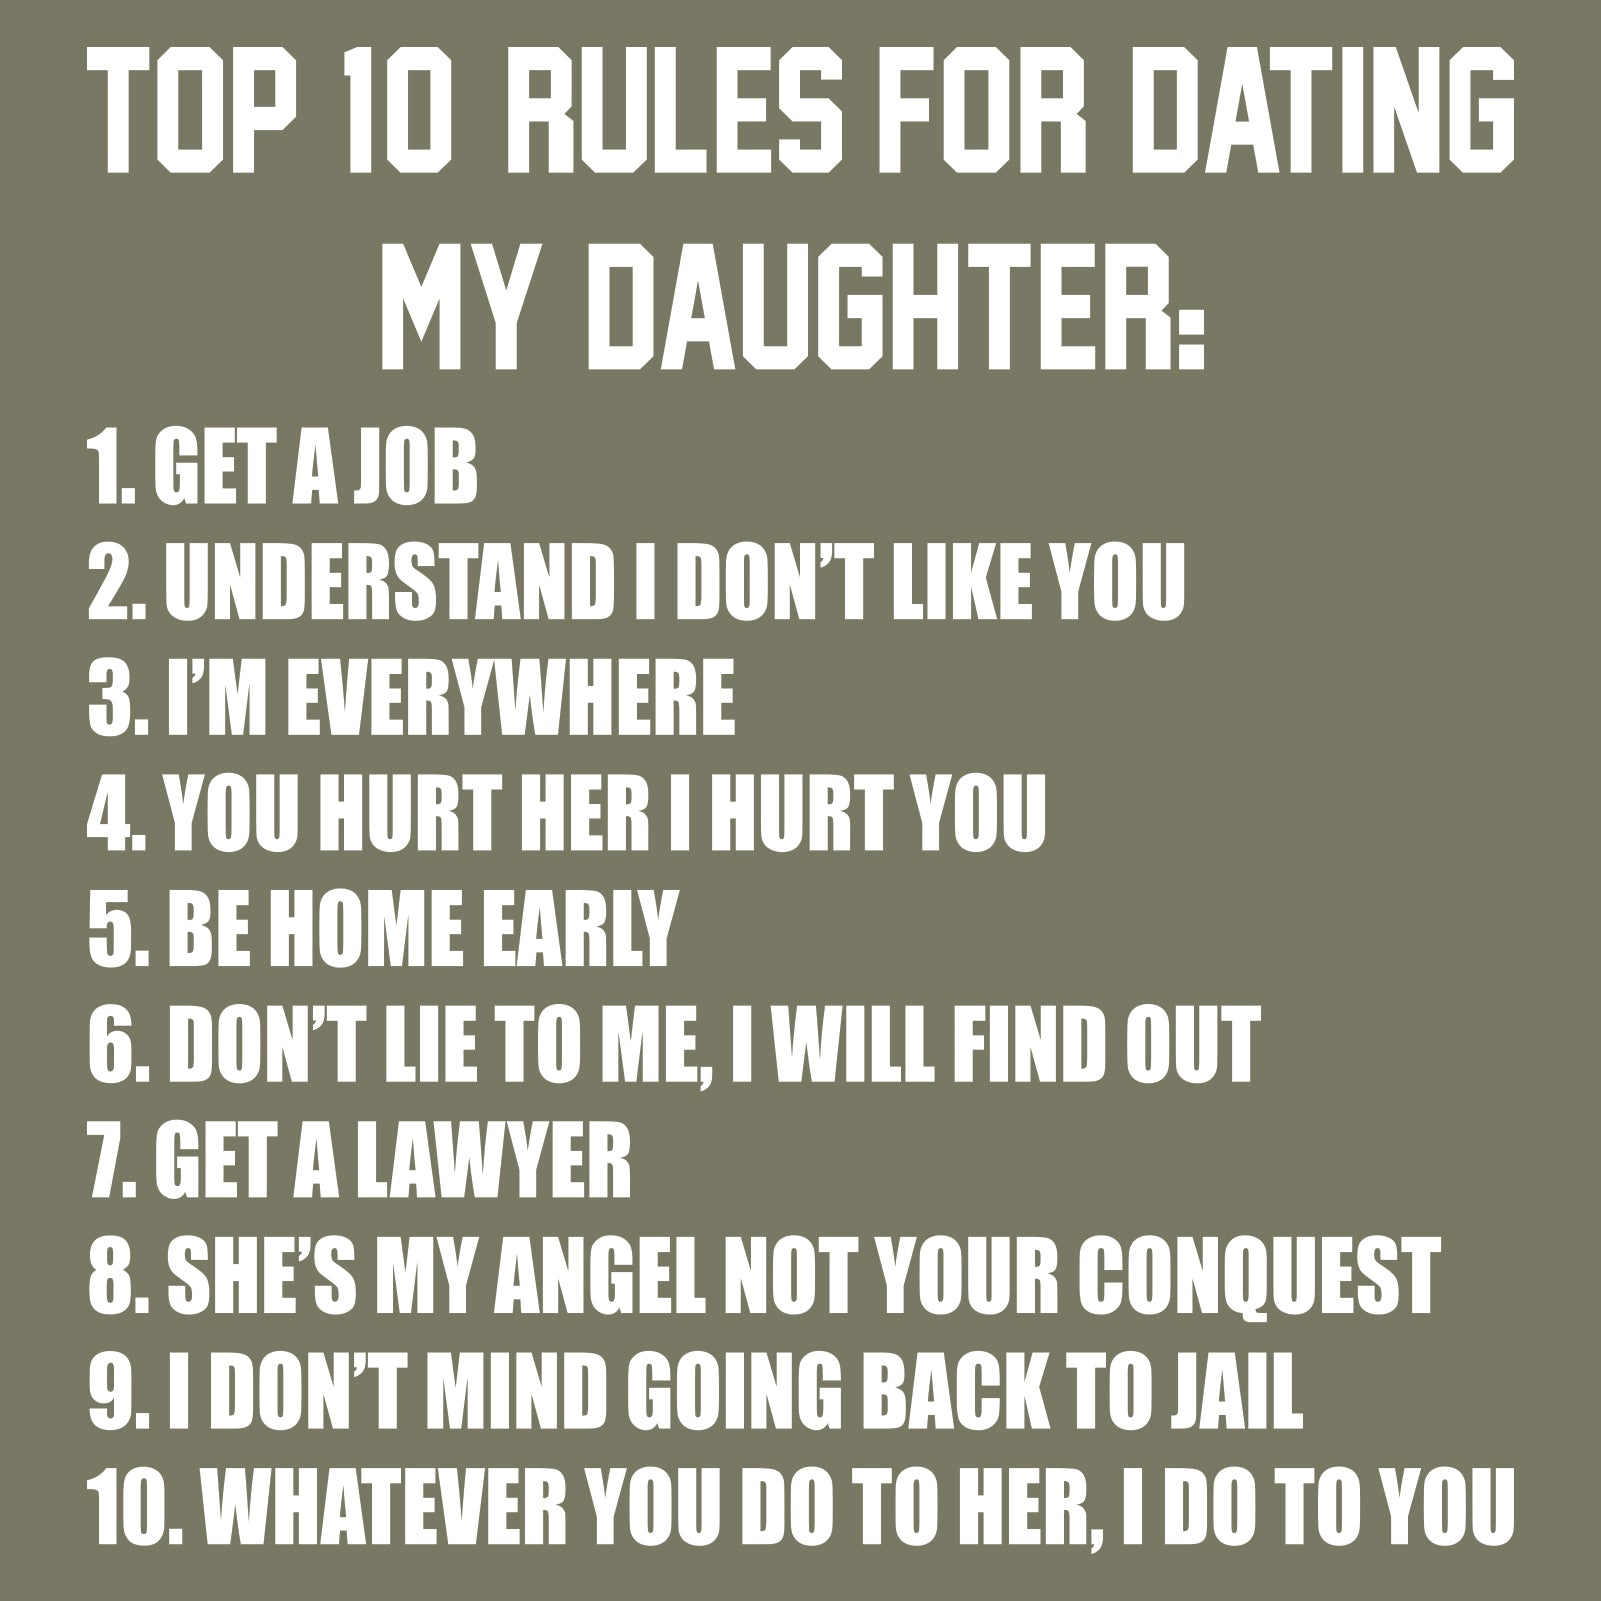 My daughter is dating someone i dont like